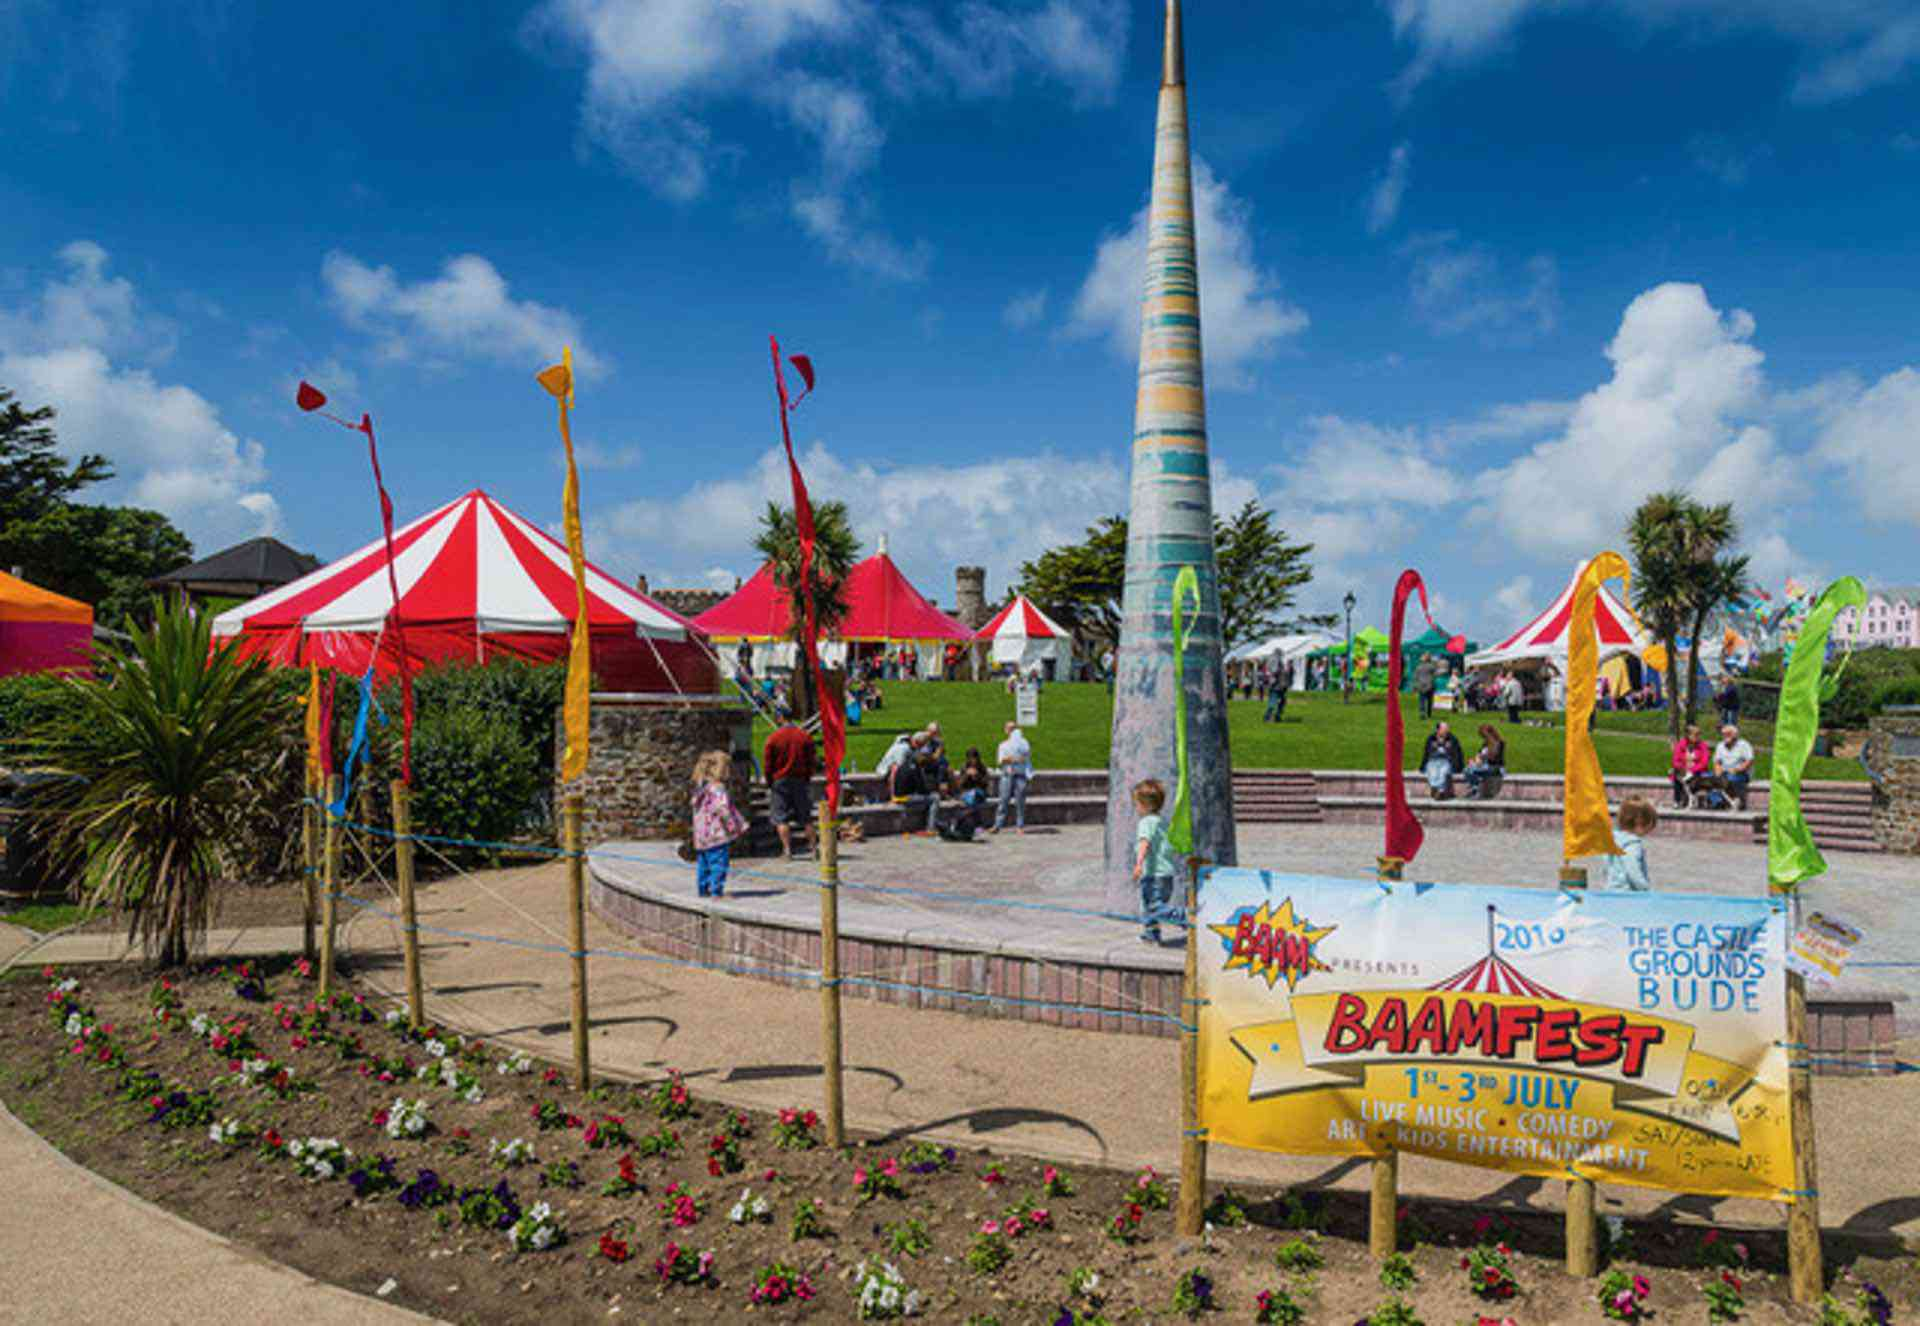 Big tops at festival in Bude town centre